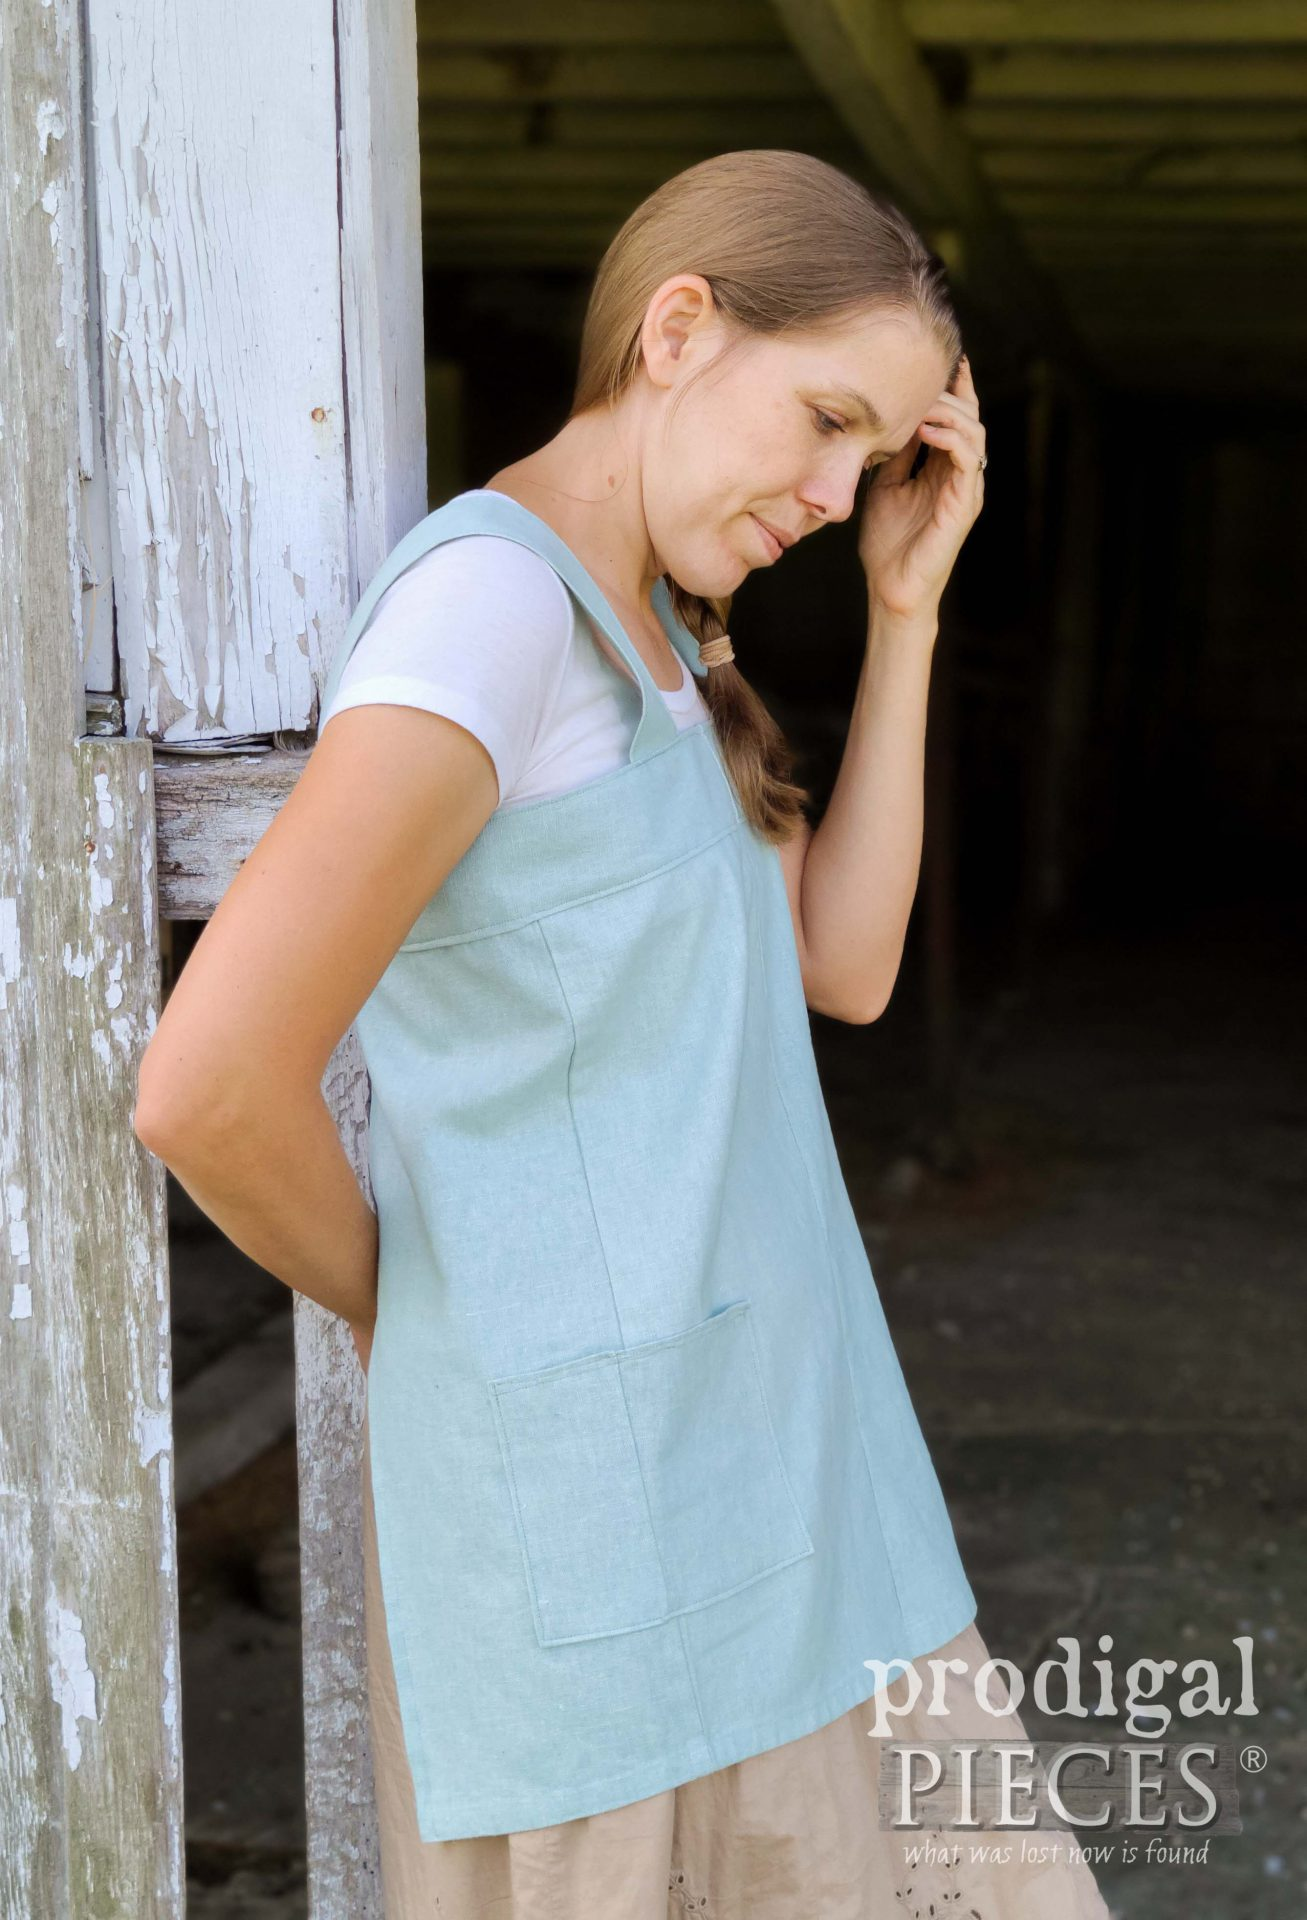 Handmade Linen Smock from Refashioned Pants by Larissa of Prodigal Pieces | prodigalpieces.com #prodigalpieces #sewing #refashion #women #style #clothing #handmade